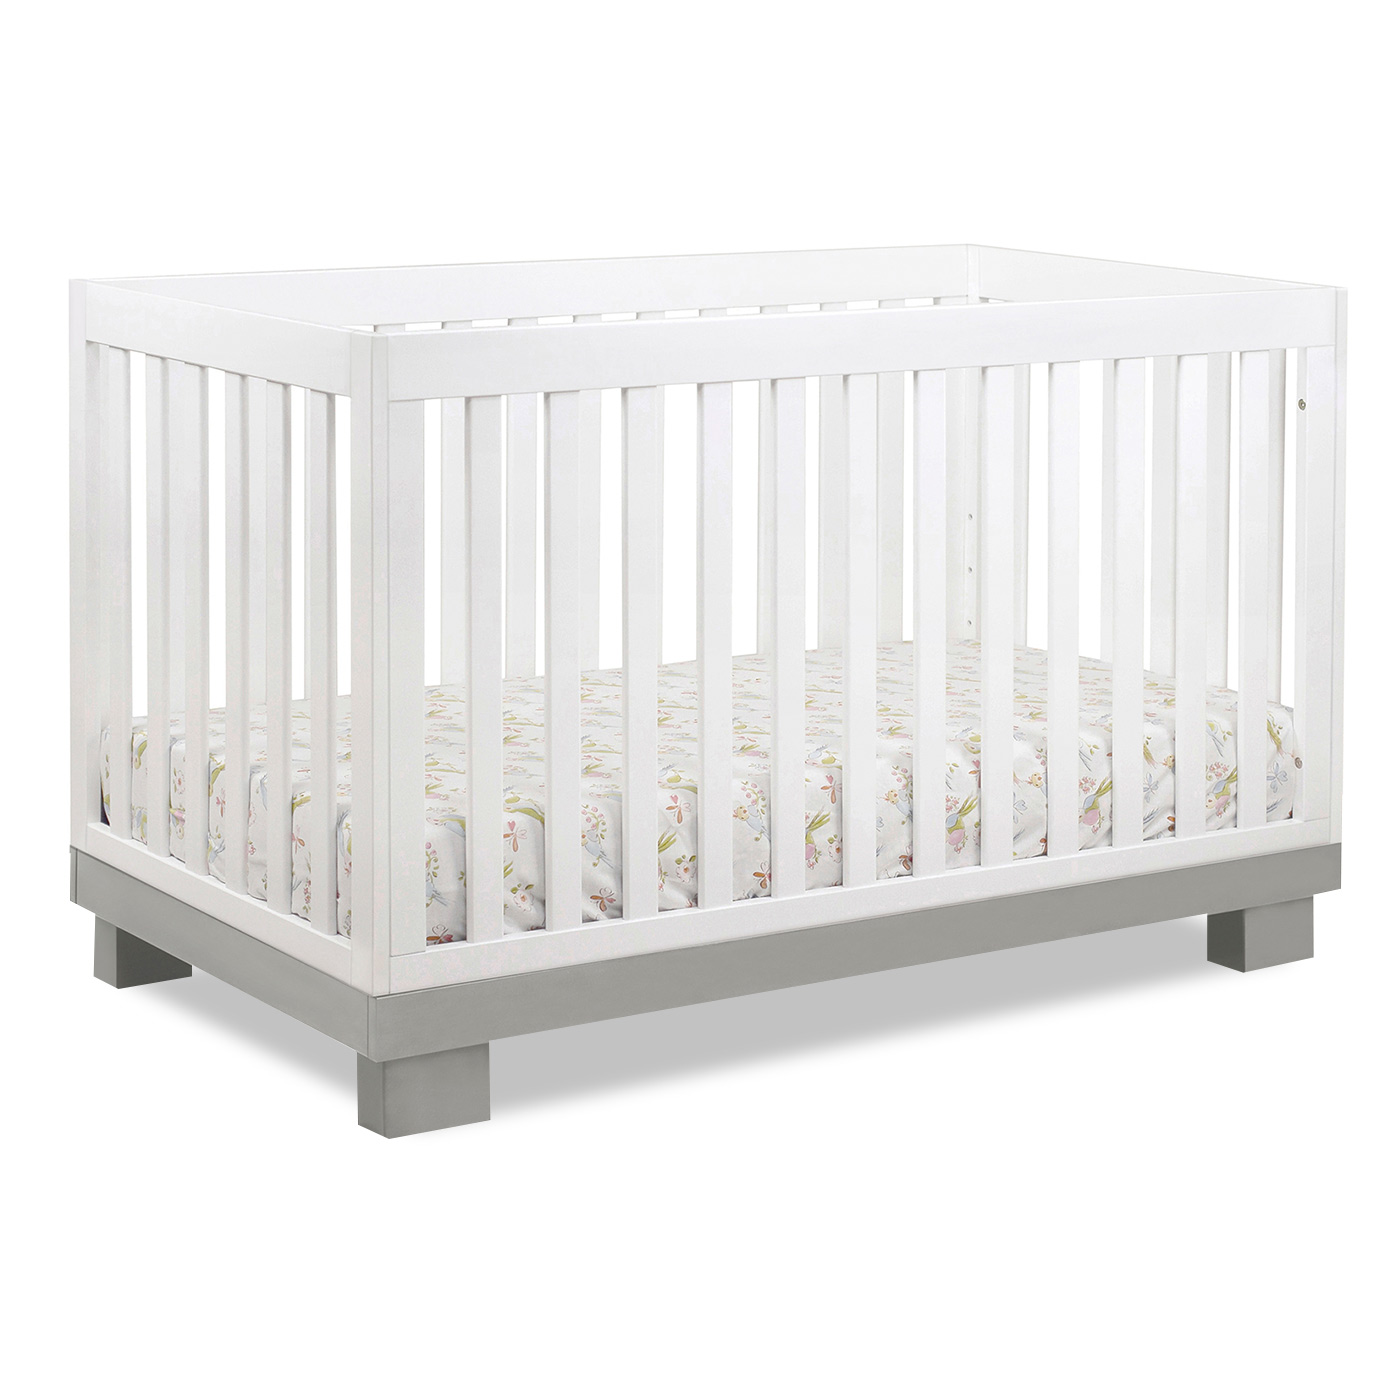 Babyletto 2 piece nursery set modo 3 in 1 convertible crib and dresser changer in grey white free shipping